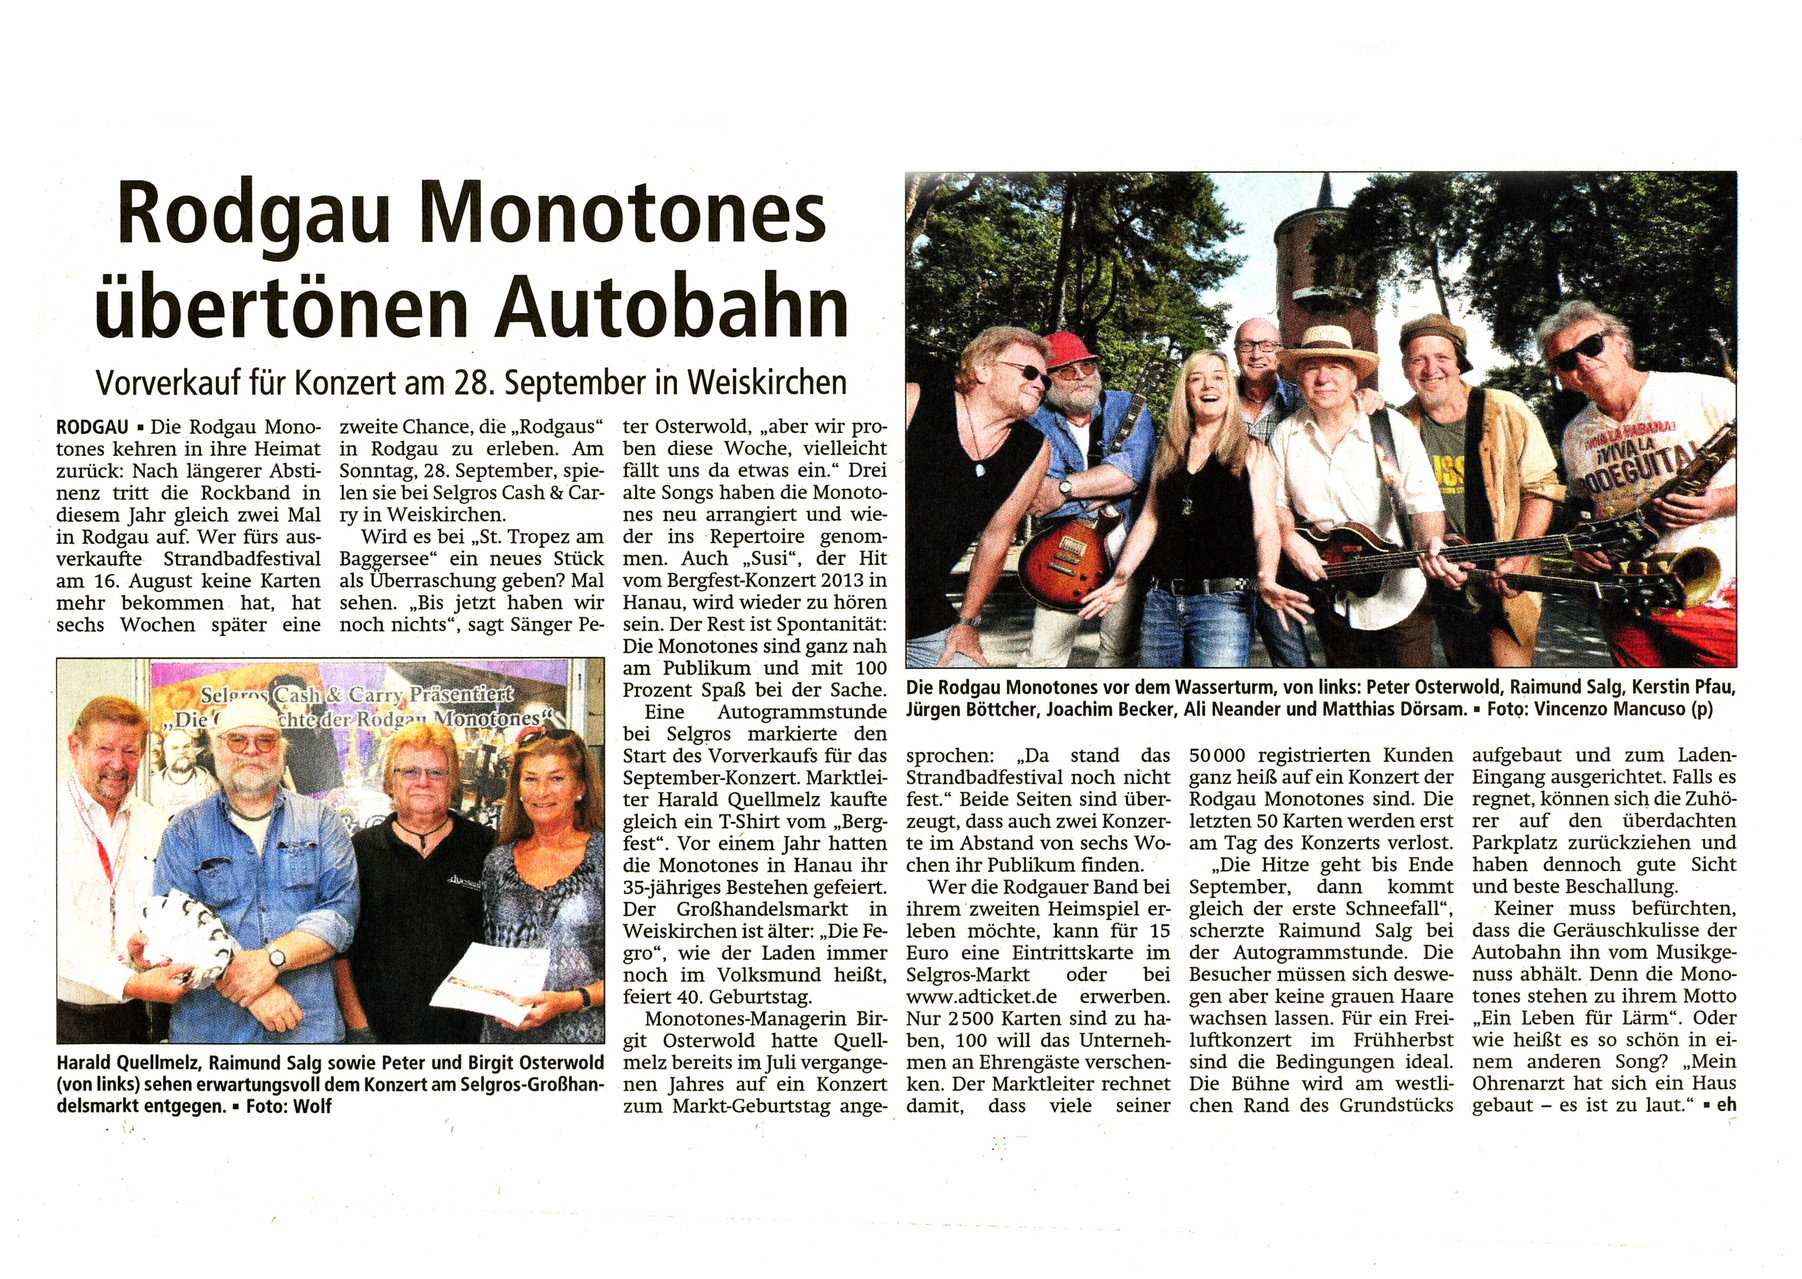 Offenbach Post, 7. August 2014